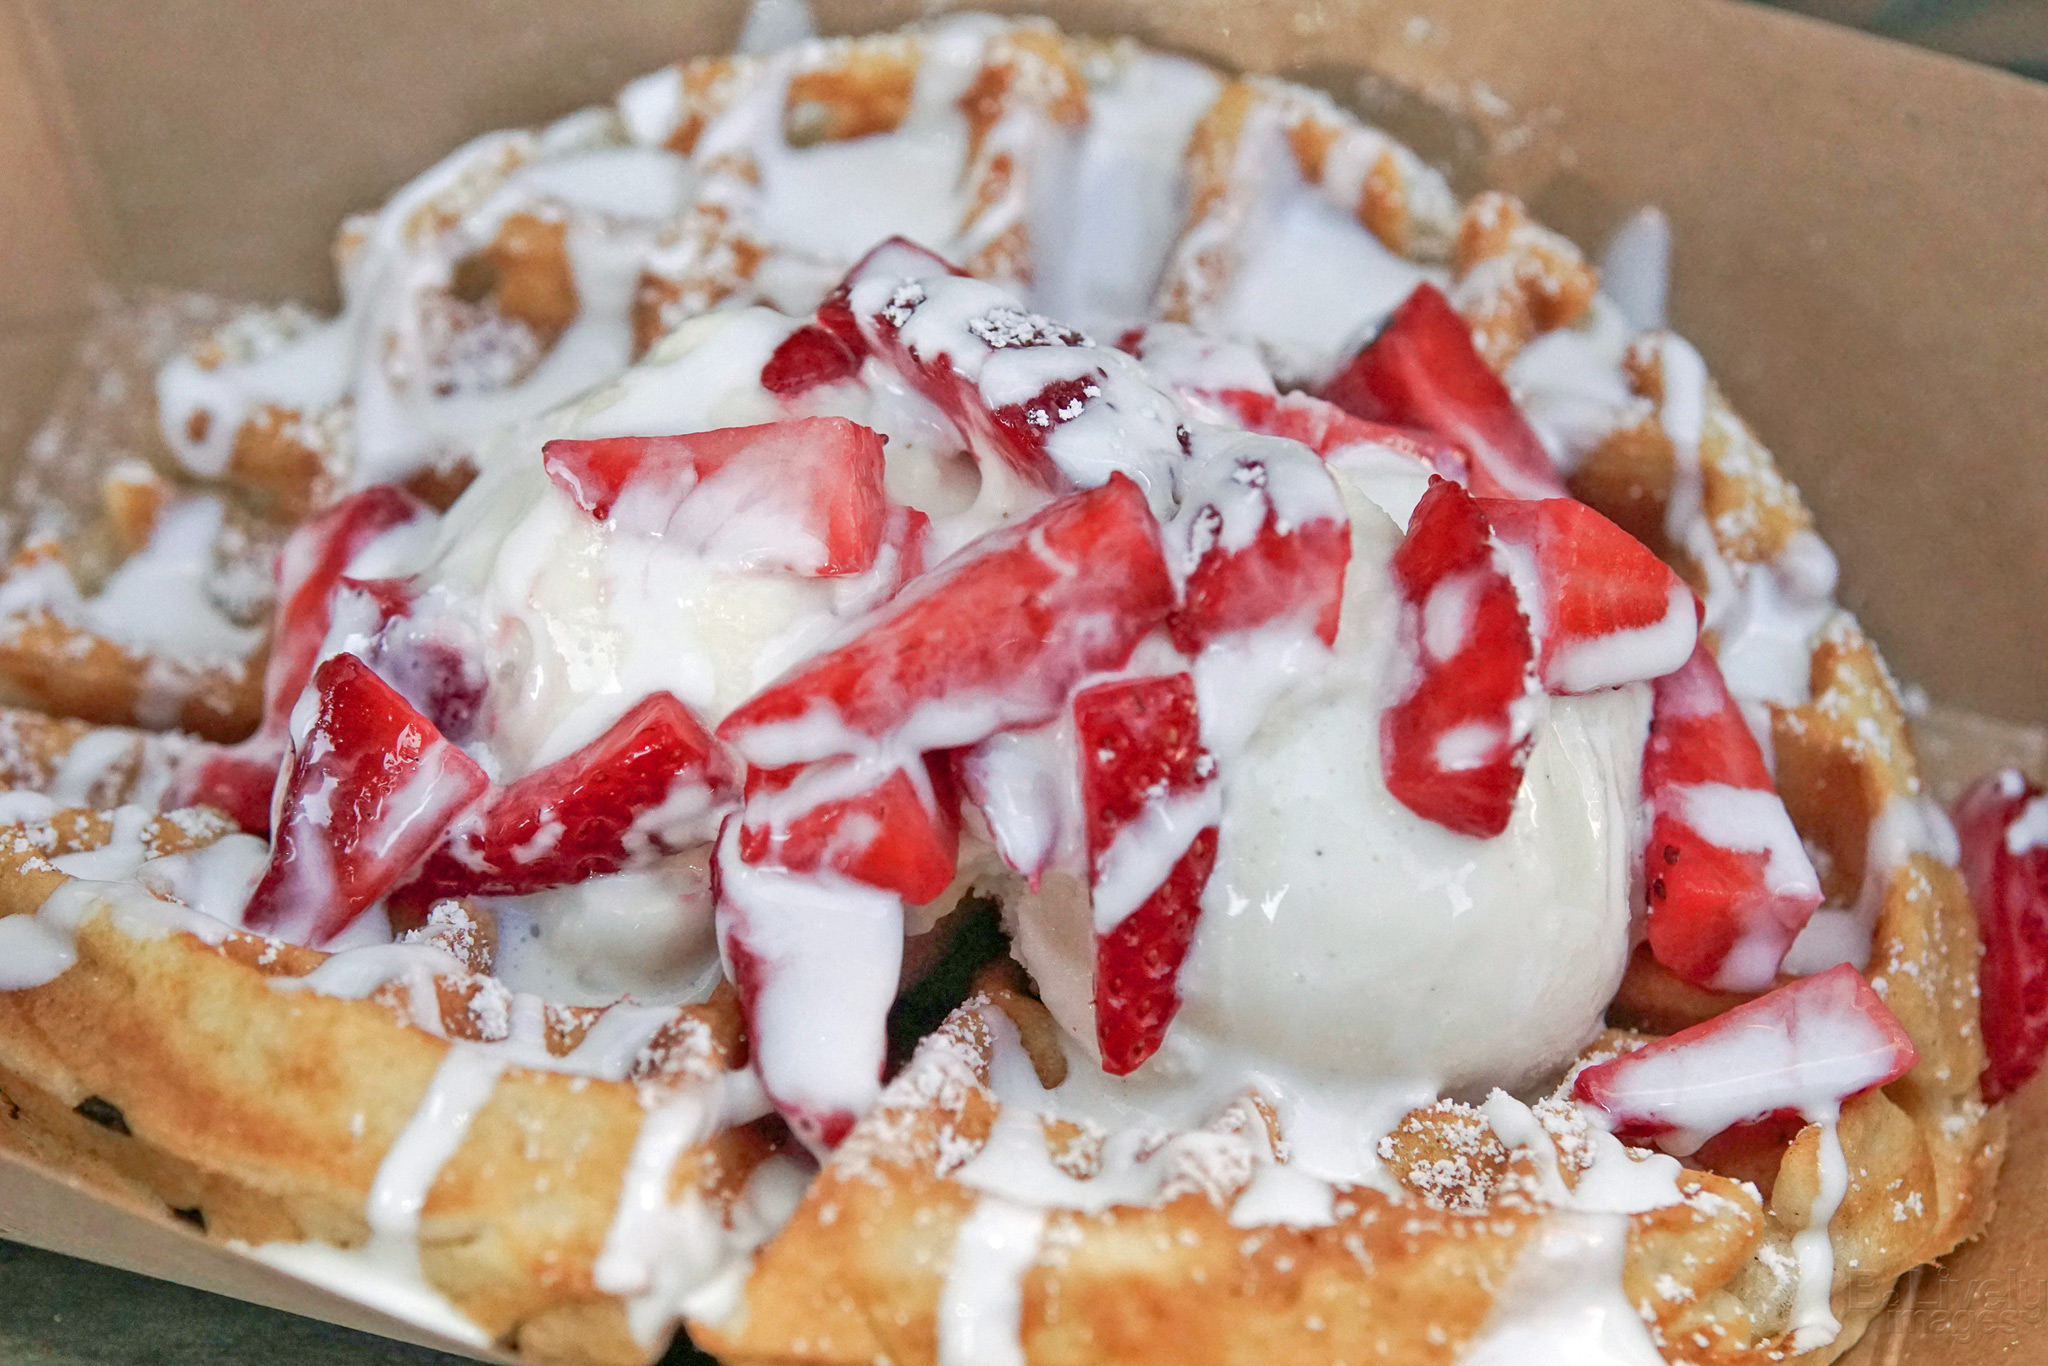 Urban Creamery Strawberries and Cream Dessert Waffle